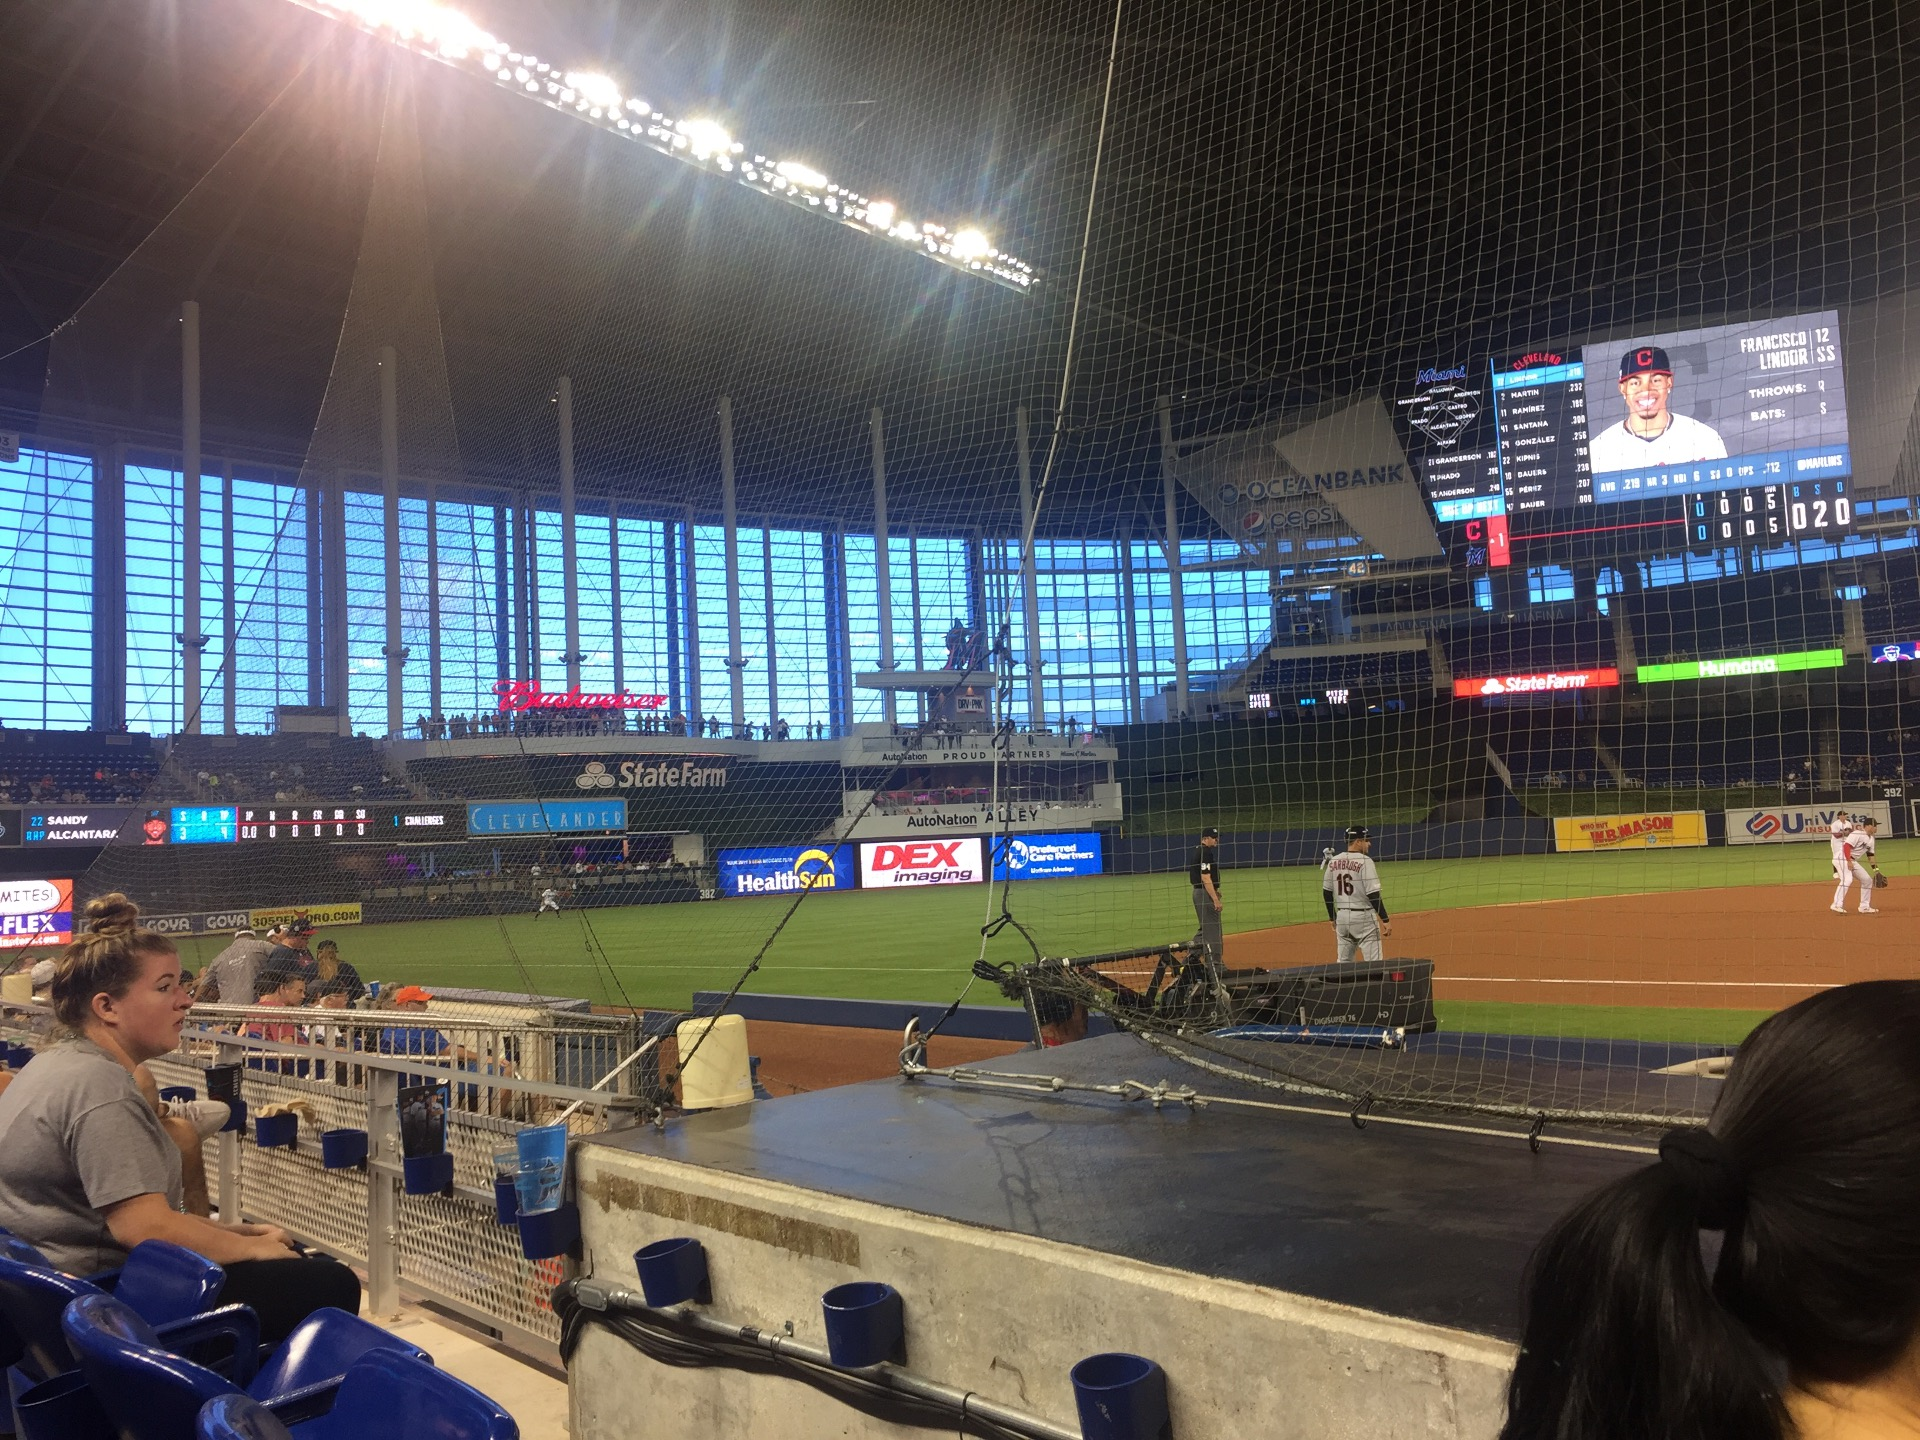 Marlins Park Section 21 Row B Seat 1